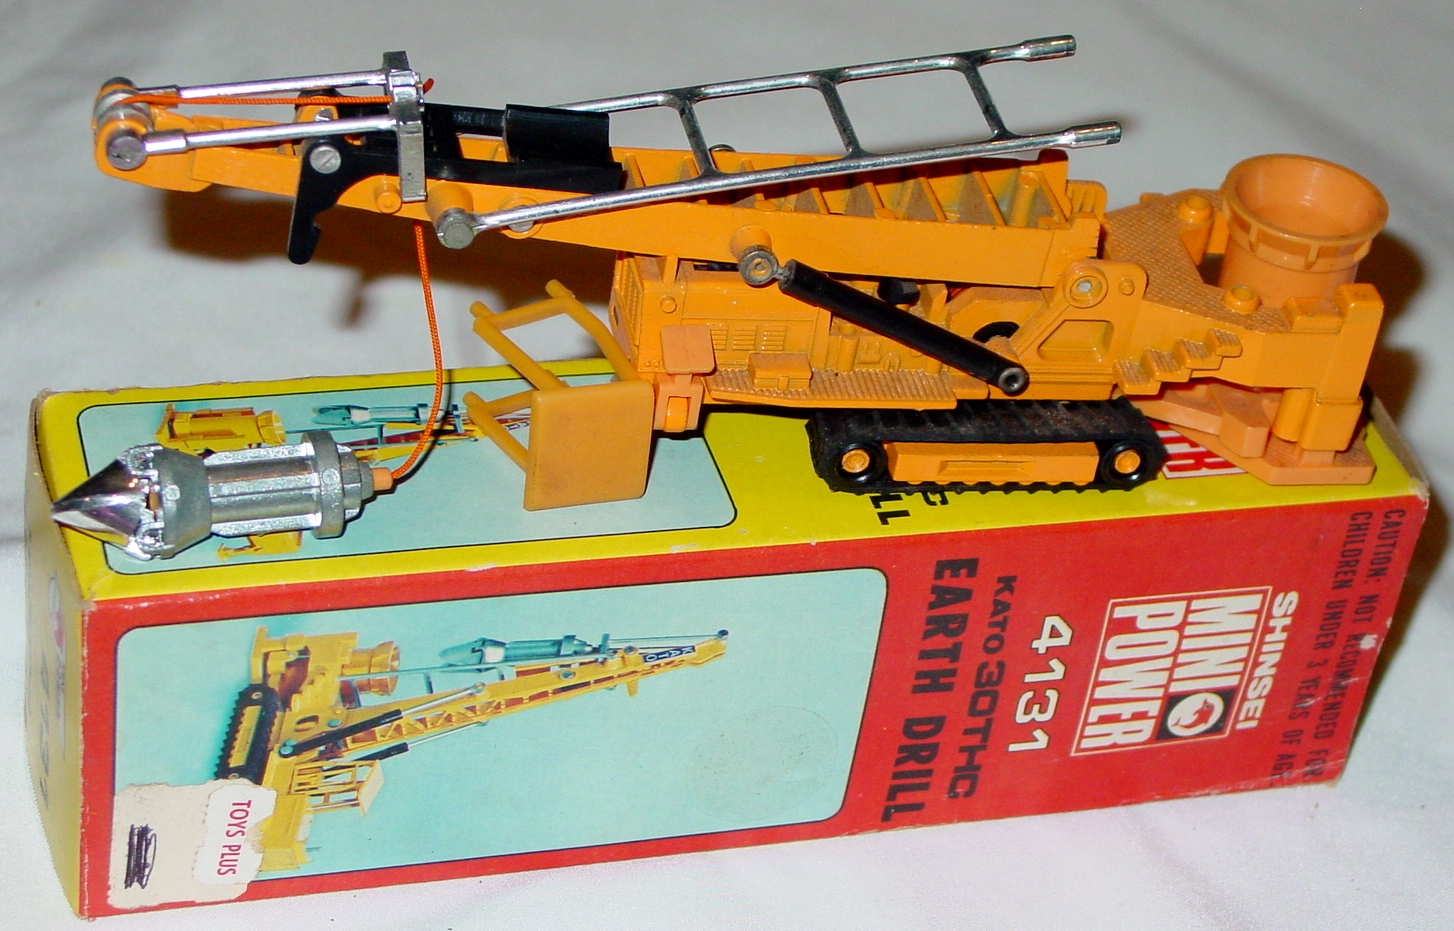 88 - SHINSEI 4131 Kato Earth Drill Org-Yellow C9 Box